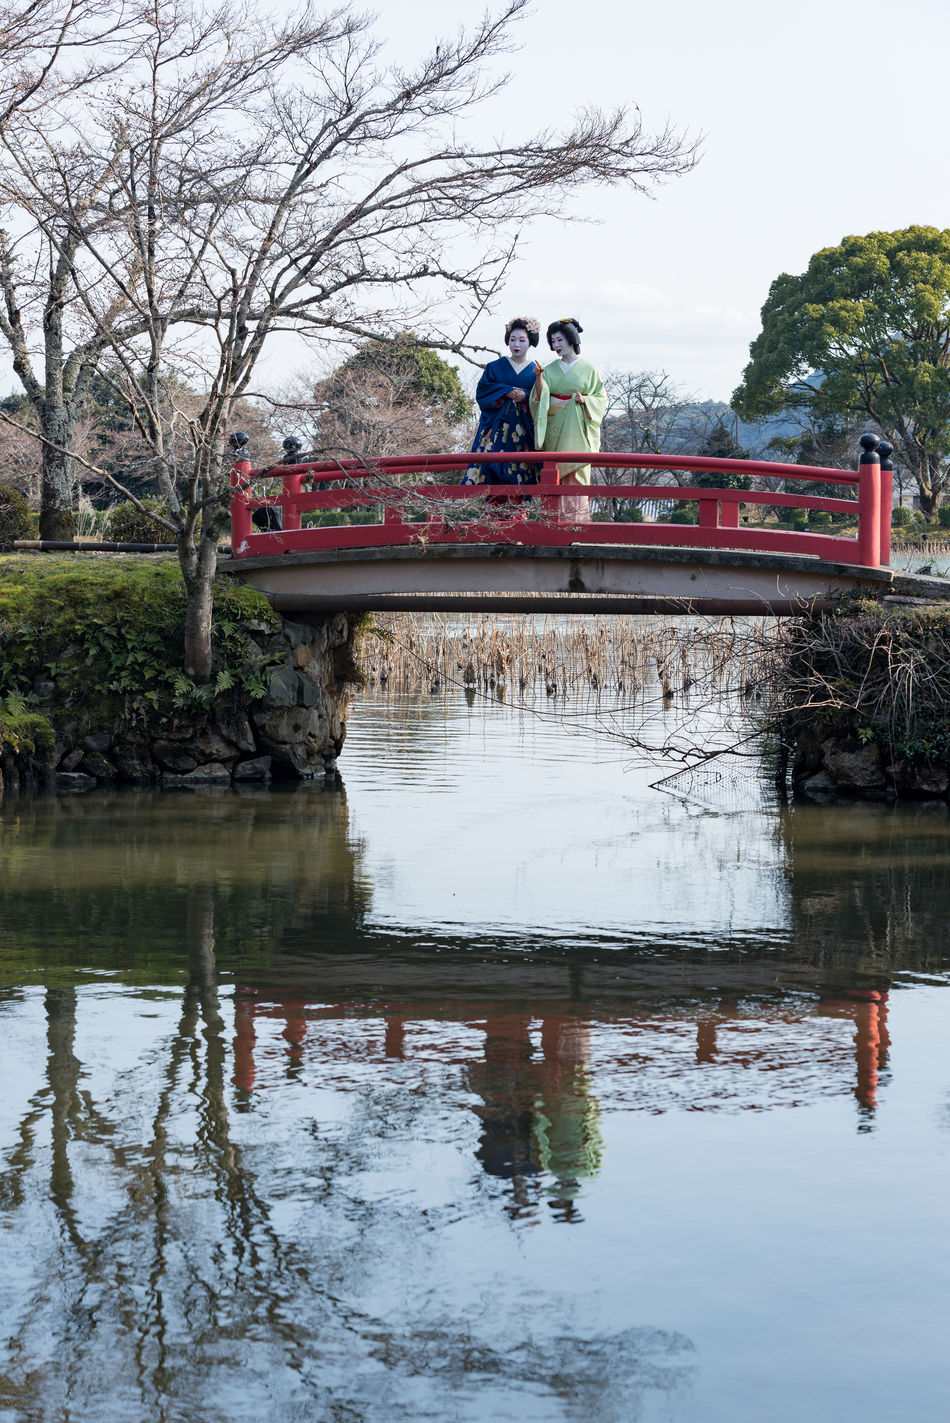 Two geishas on a red bridge with water reflection - Kyoto Branch Bridge - Man Made Structure Connection Day Footbridge Full Length Geisha Japan Japan Photography Japanese Culture Japanese Style Kyoto Men Nature Outdoors People Real People Reflection River Sky Standing Togetherness Tree Water Women